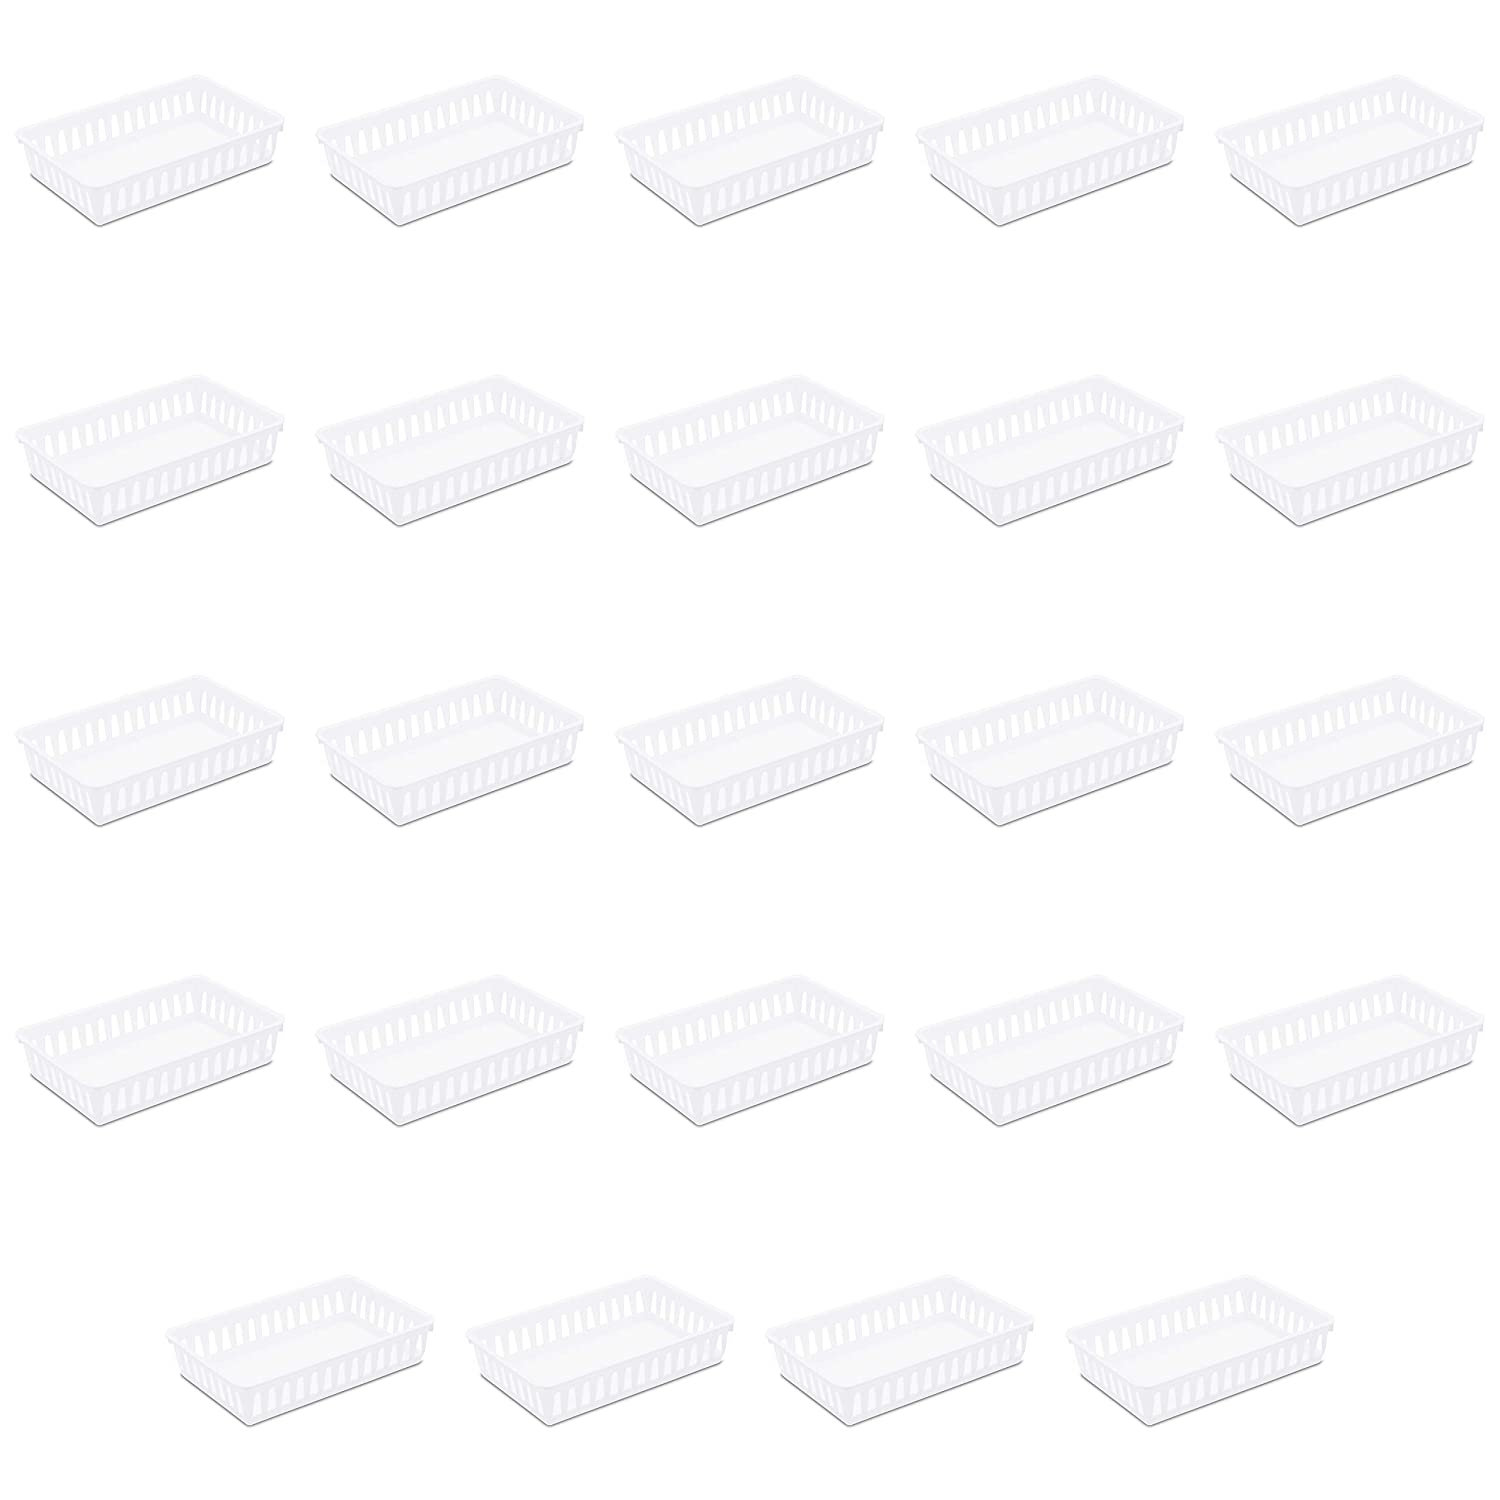 Sterilite 16068024 Storage Tray, White, 24-Pack